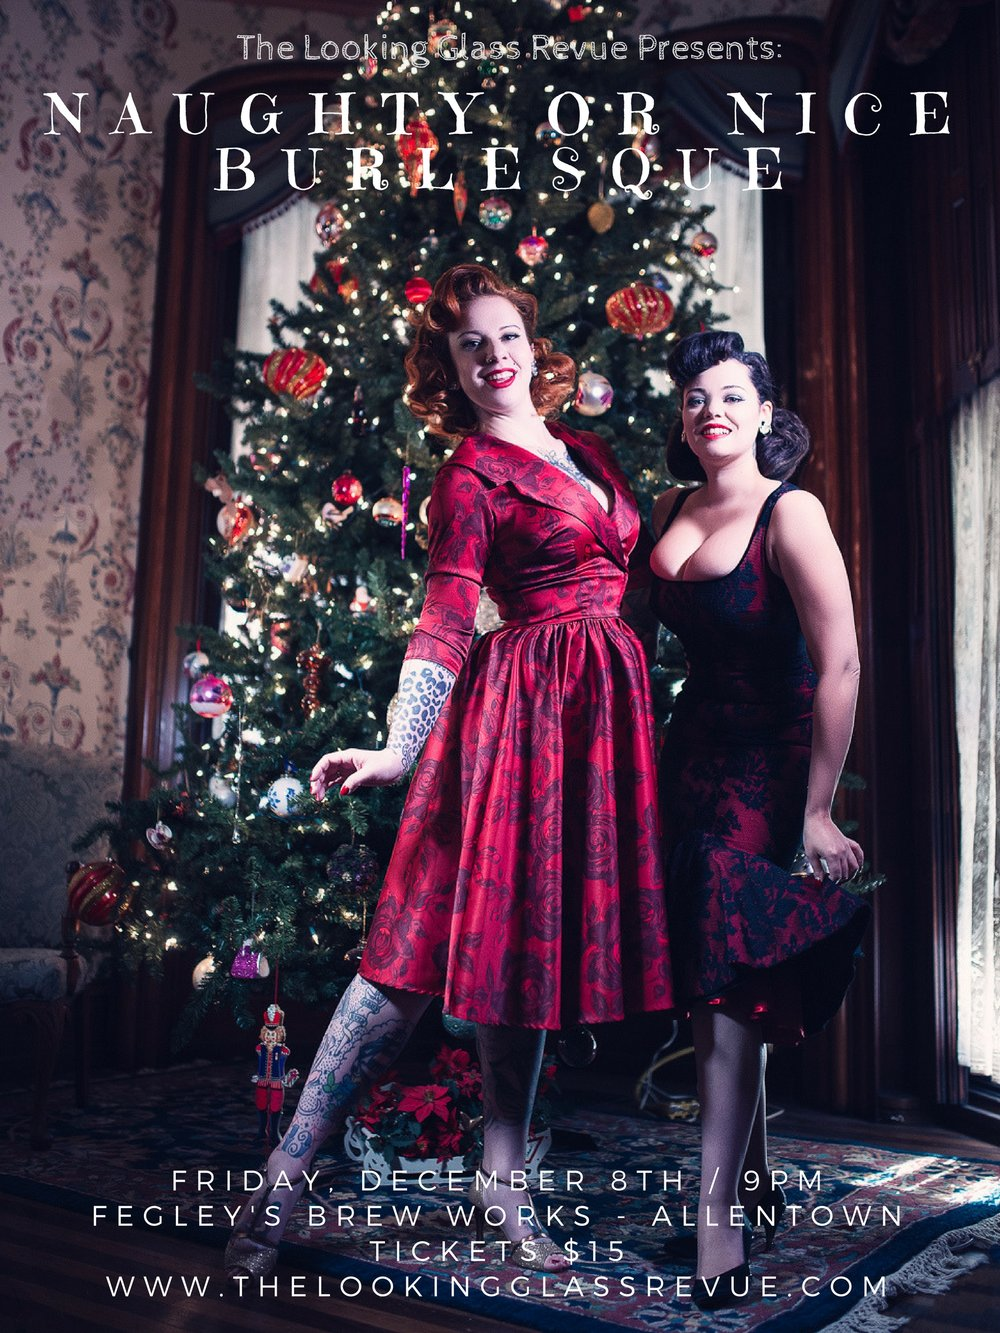 Naughty or nice burlesque.jpg